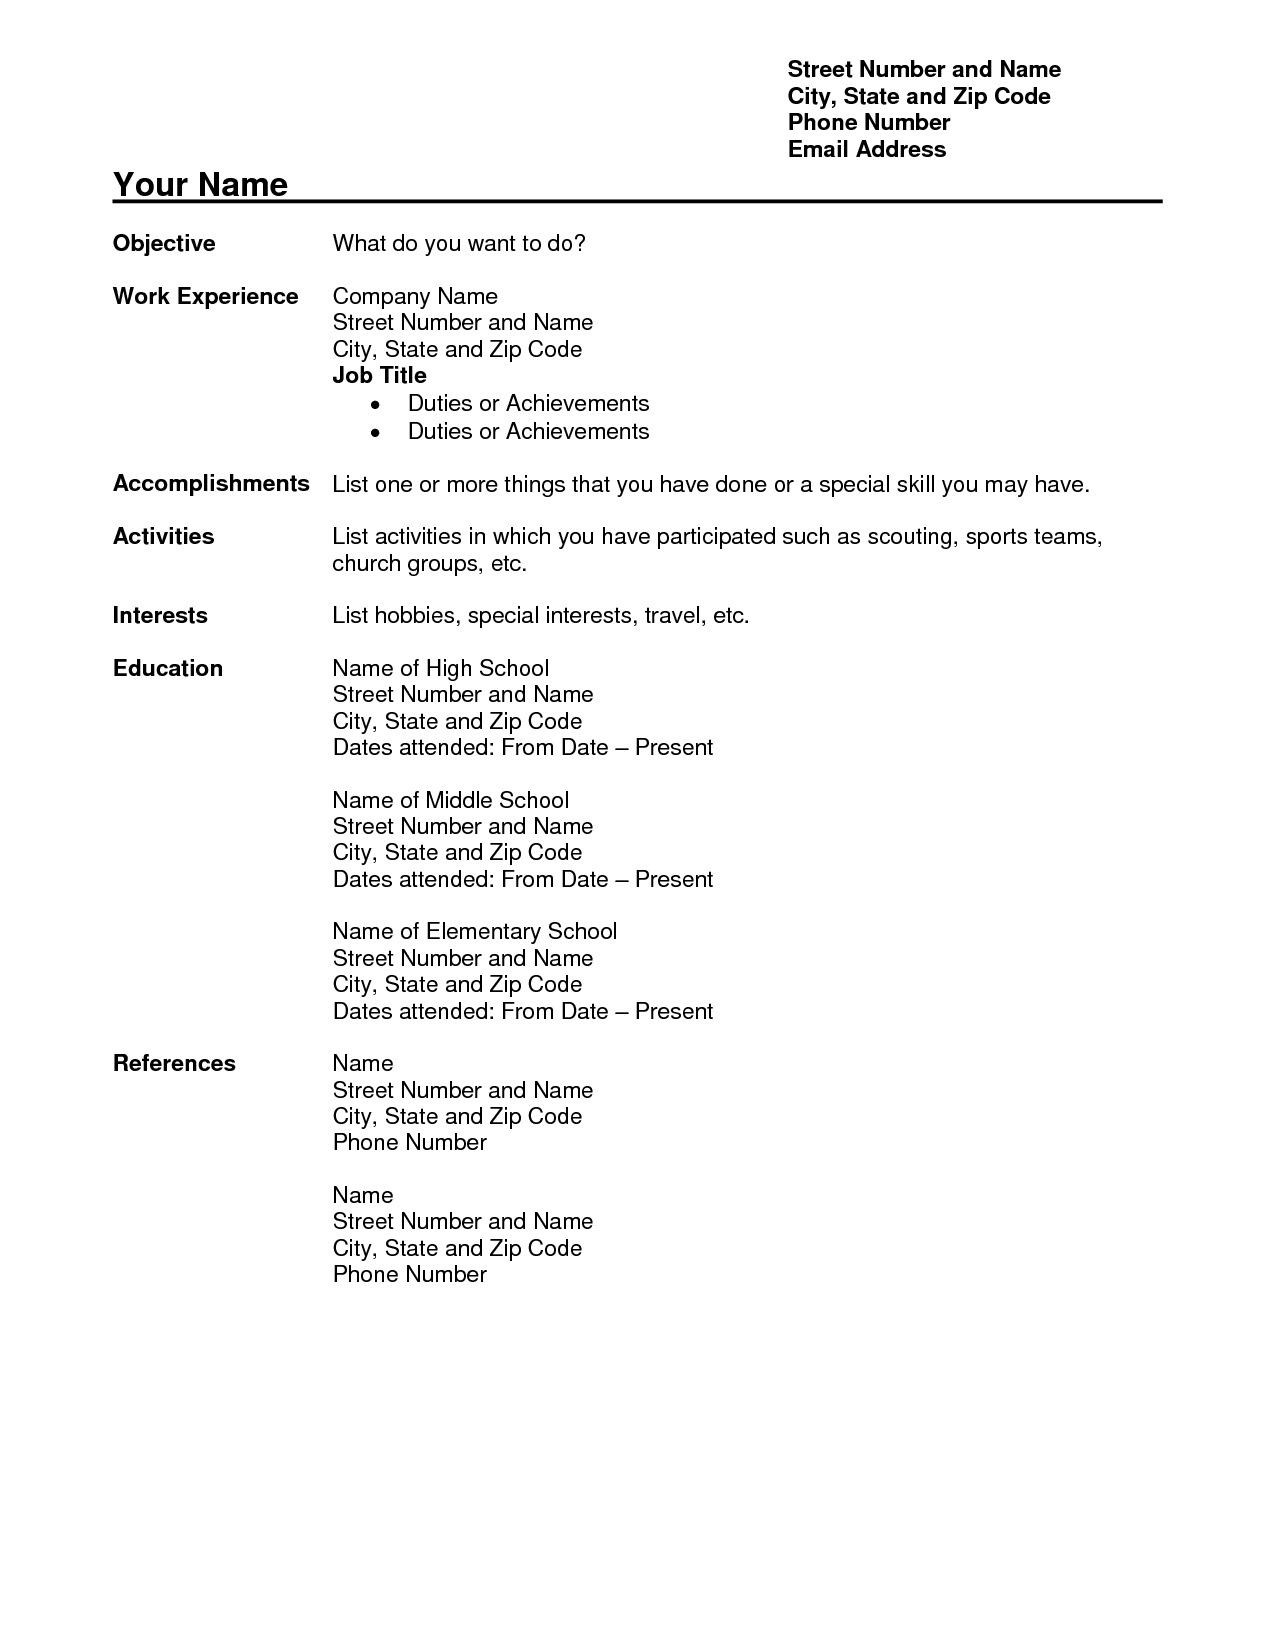 free teacher resume templates download free teacher resume templates download free teacher resume templates microsoft - Download Resumes For Free